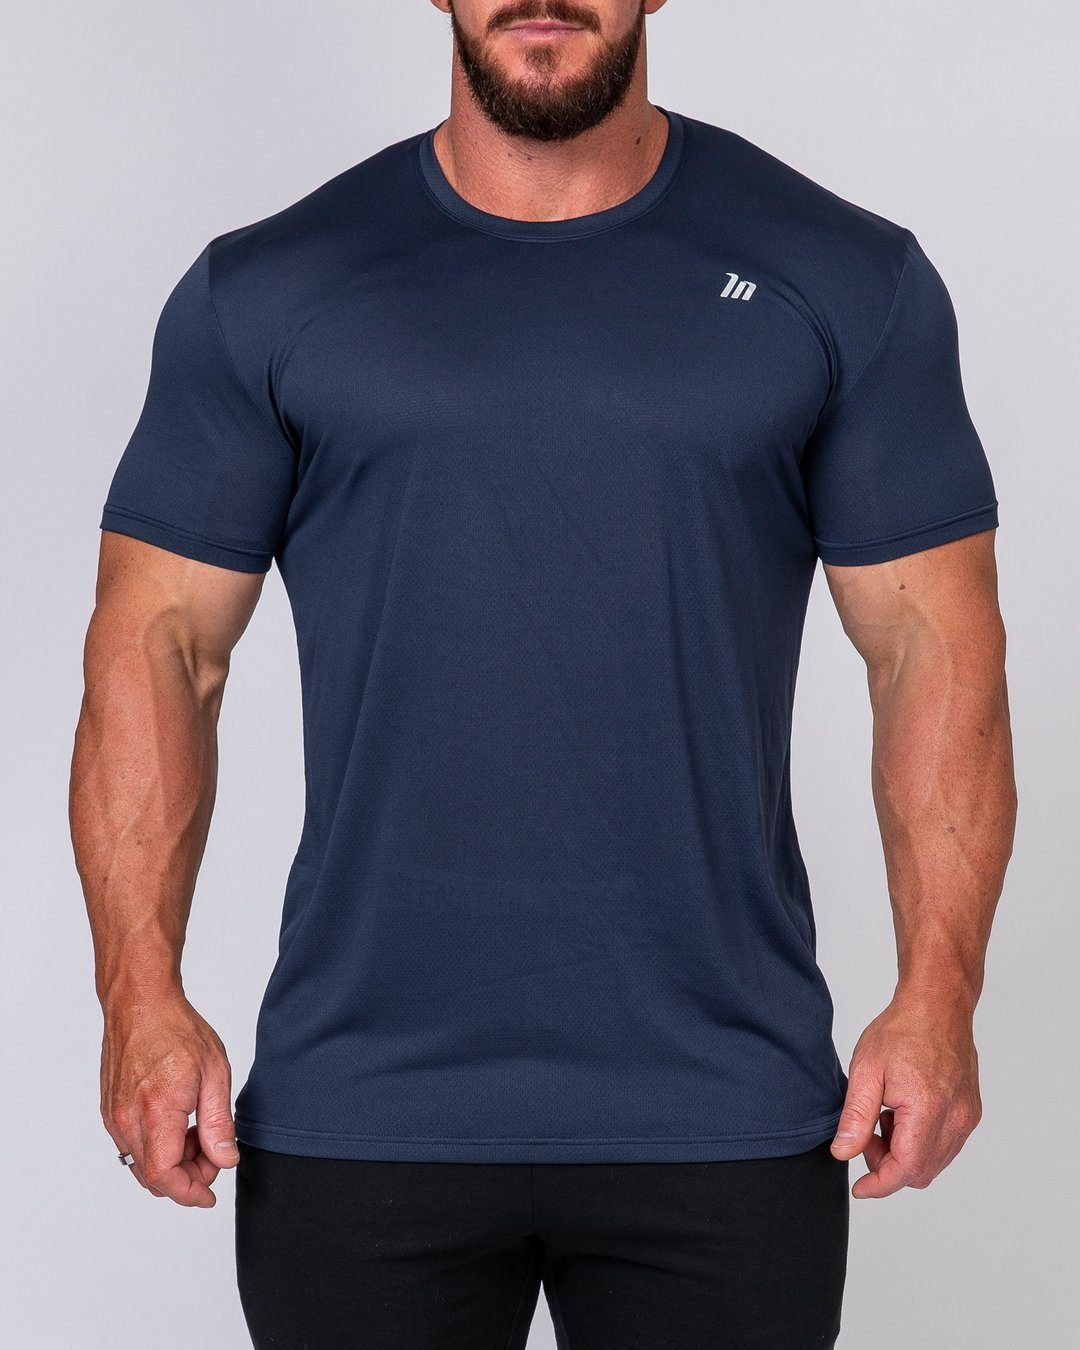 Muscle Nation Mens Running Tee - Navy